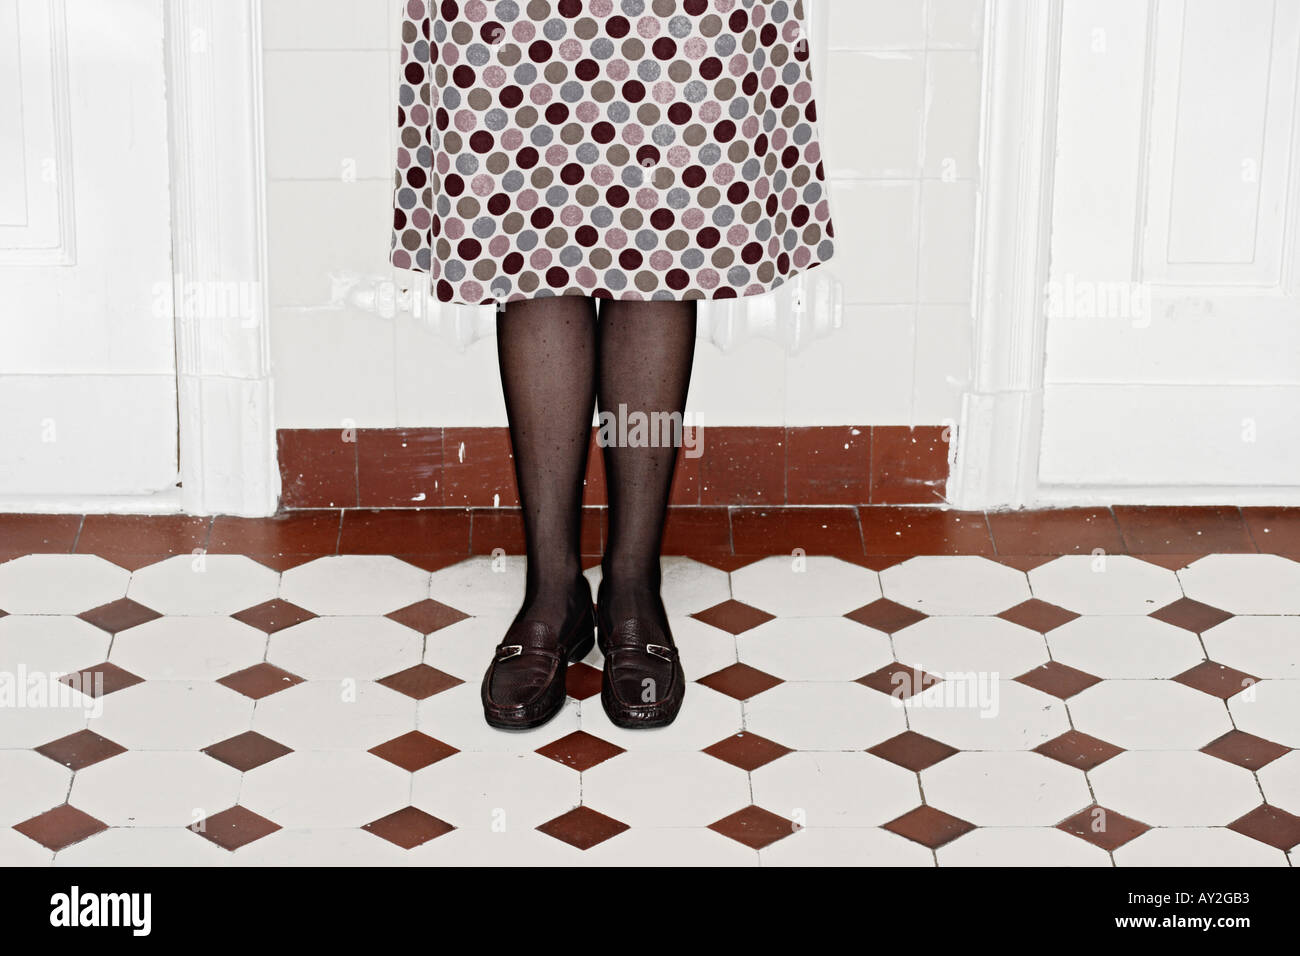 Young Woman In Dotted Skirt Standing On Tiles In Apartment Berlin Germany - Stock Image